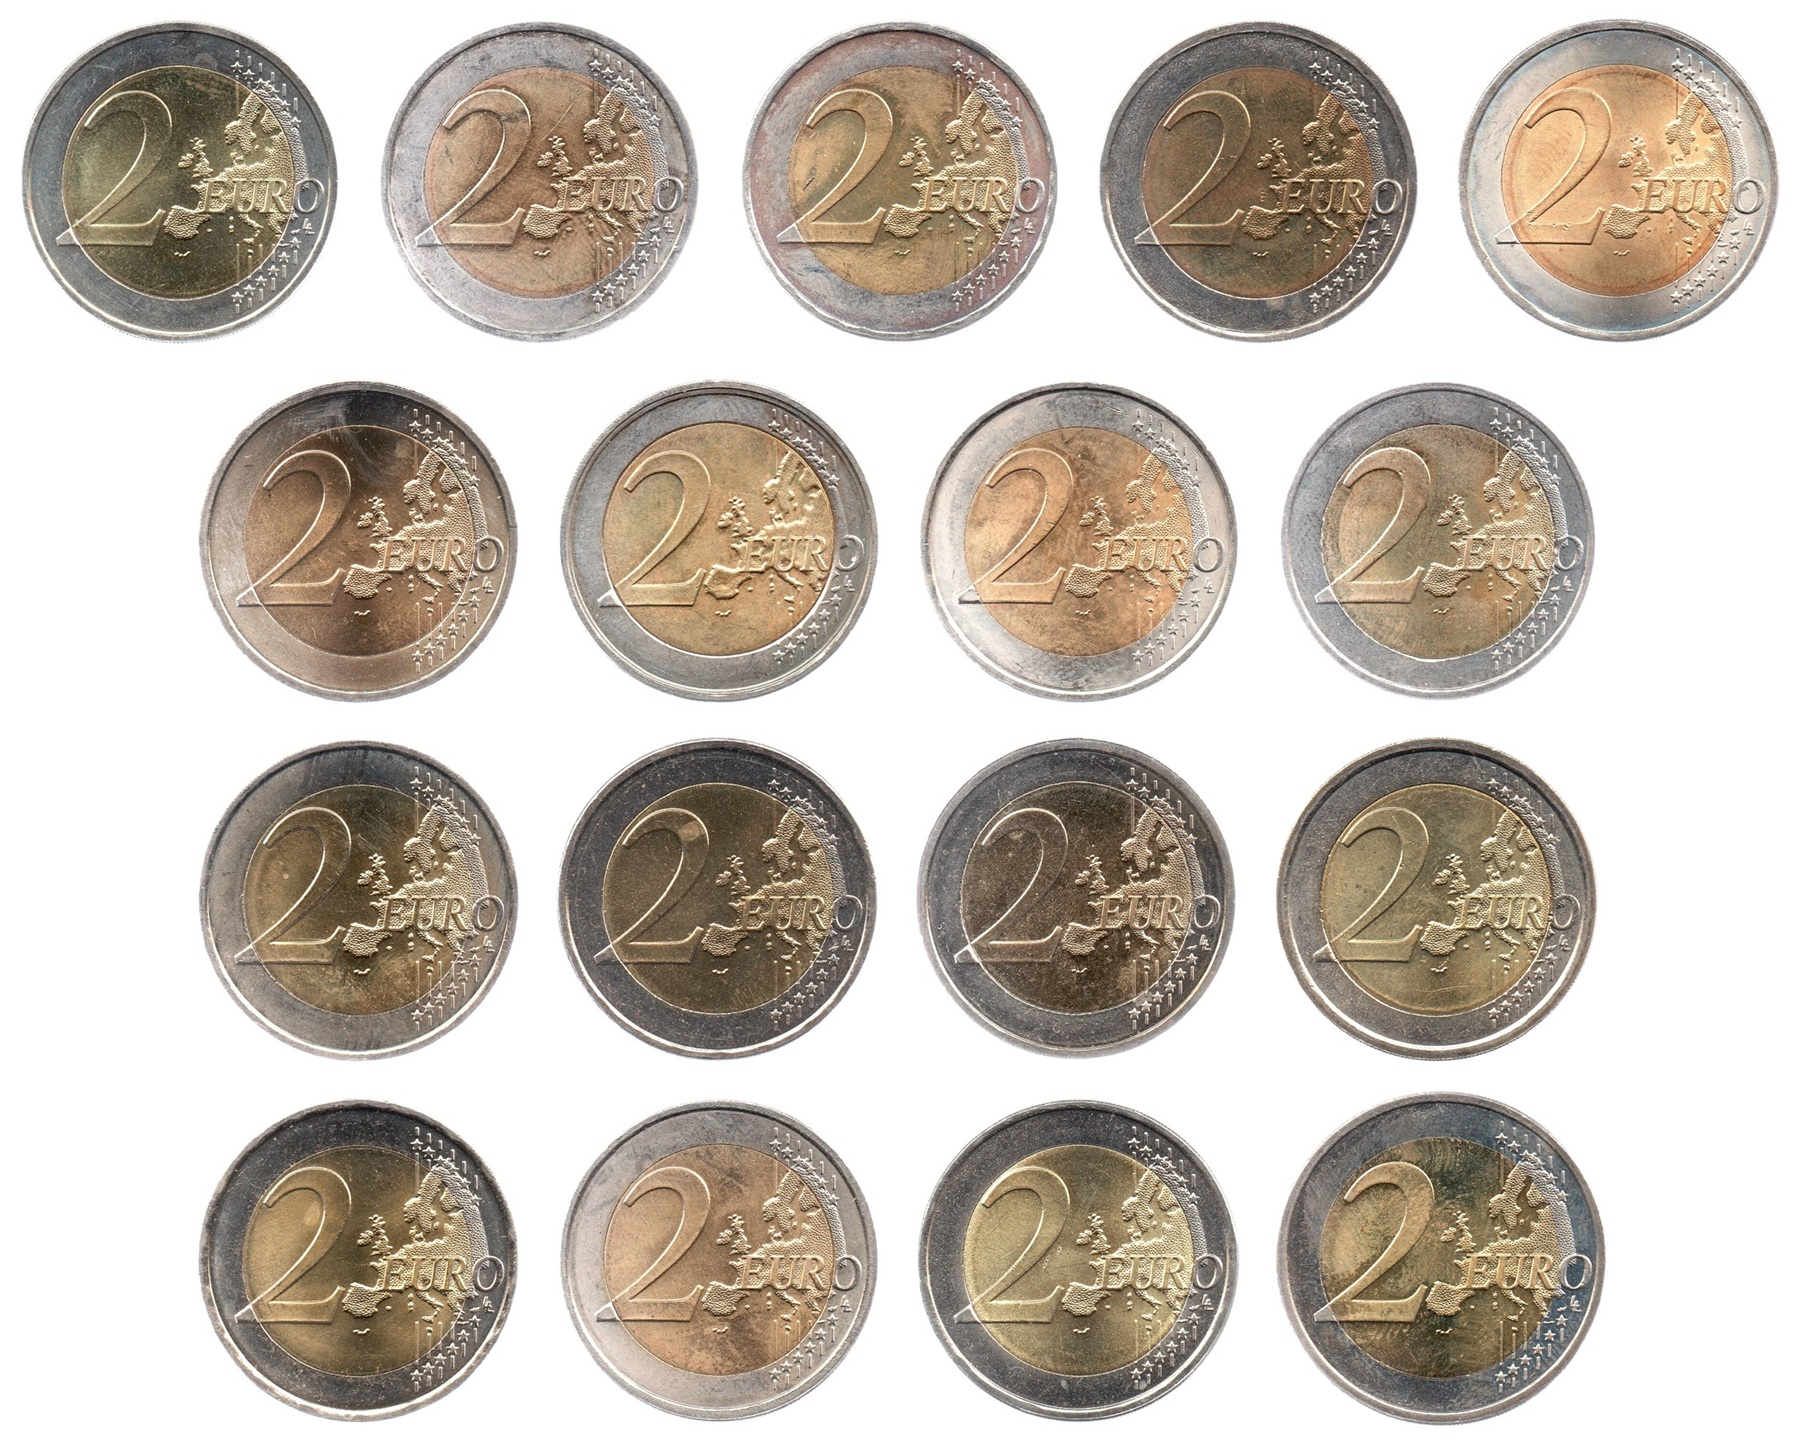 (LOT.134.200.2007.1.sup.à.spl.000000001) 2 euro 2007 - Treaty of Rome (complete series of 17 coins) Reverses (zoom)